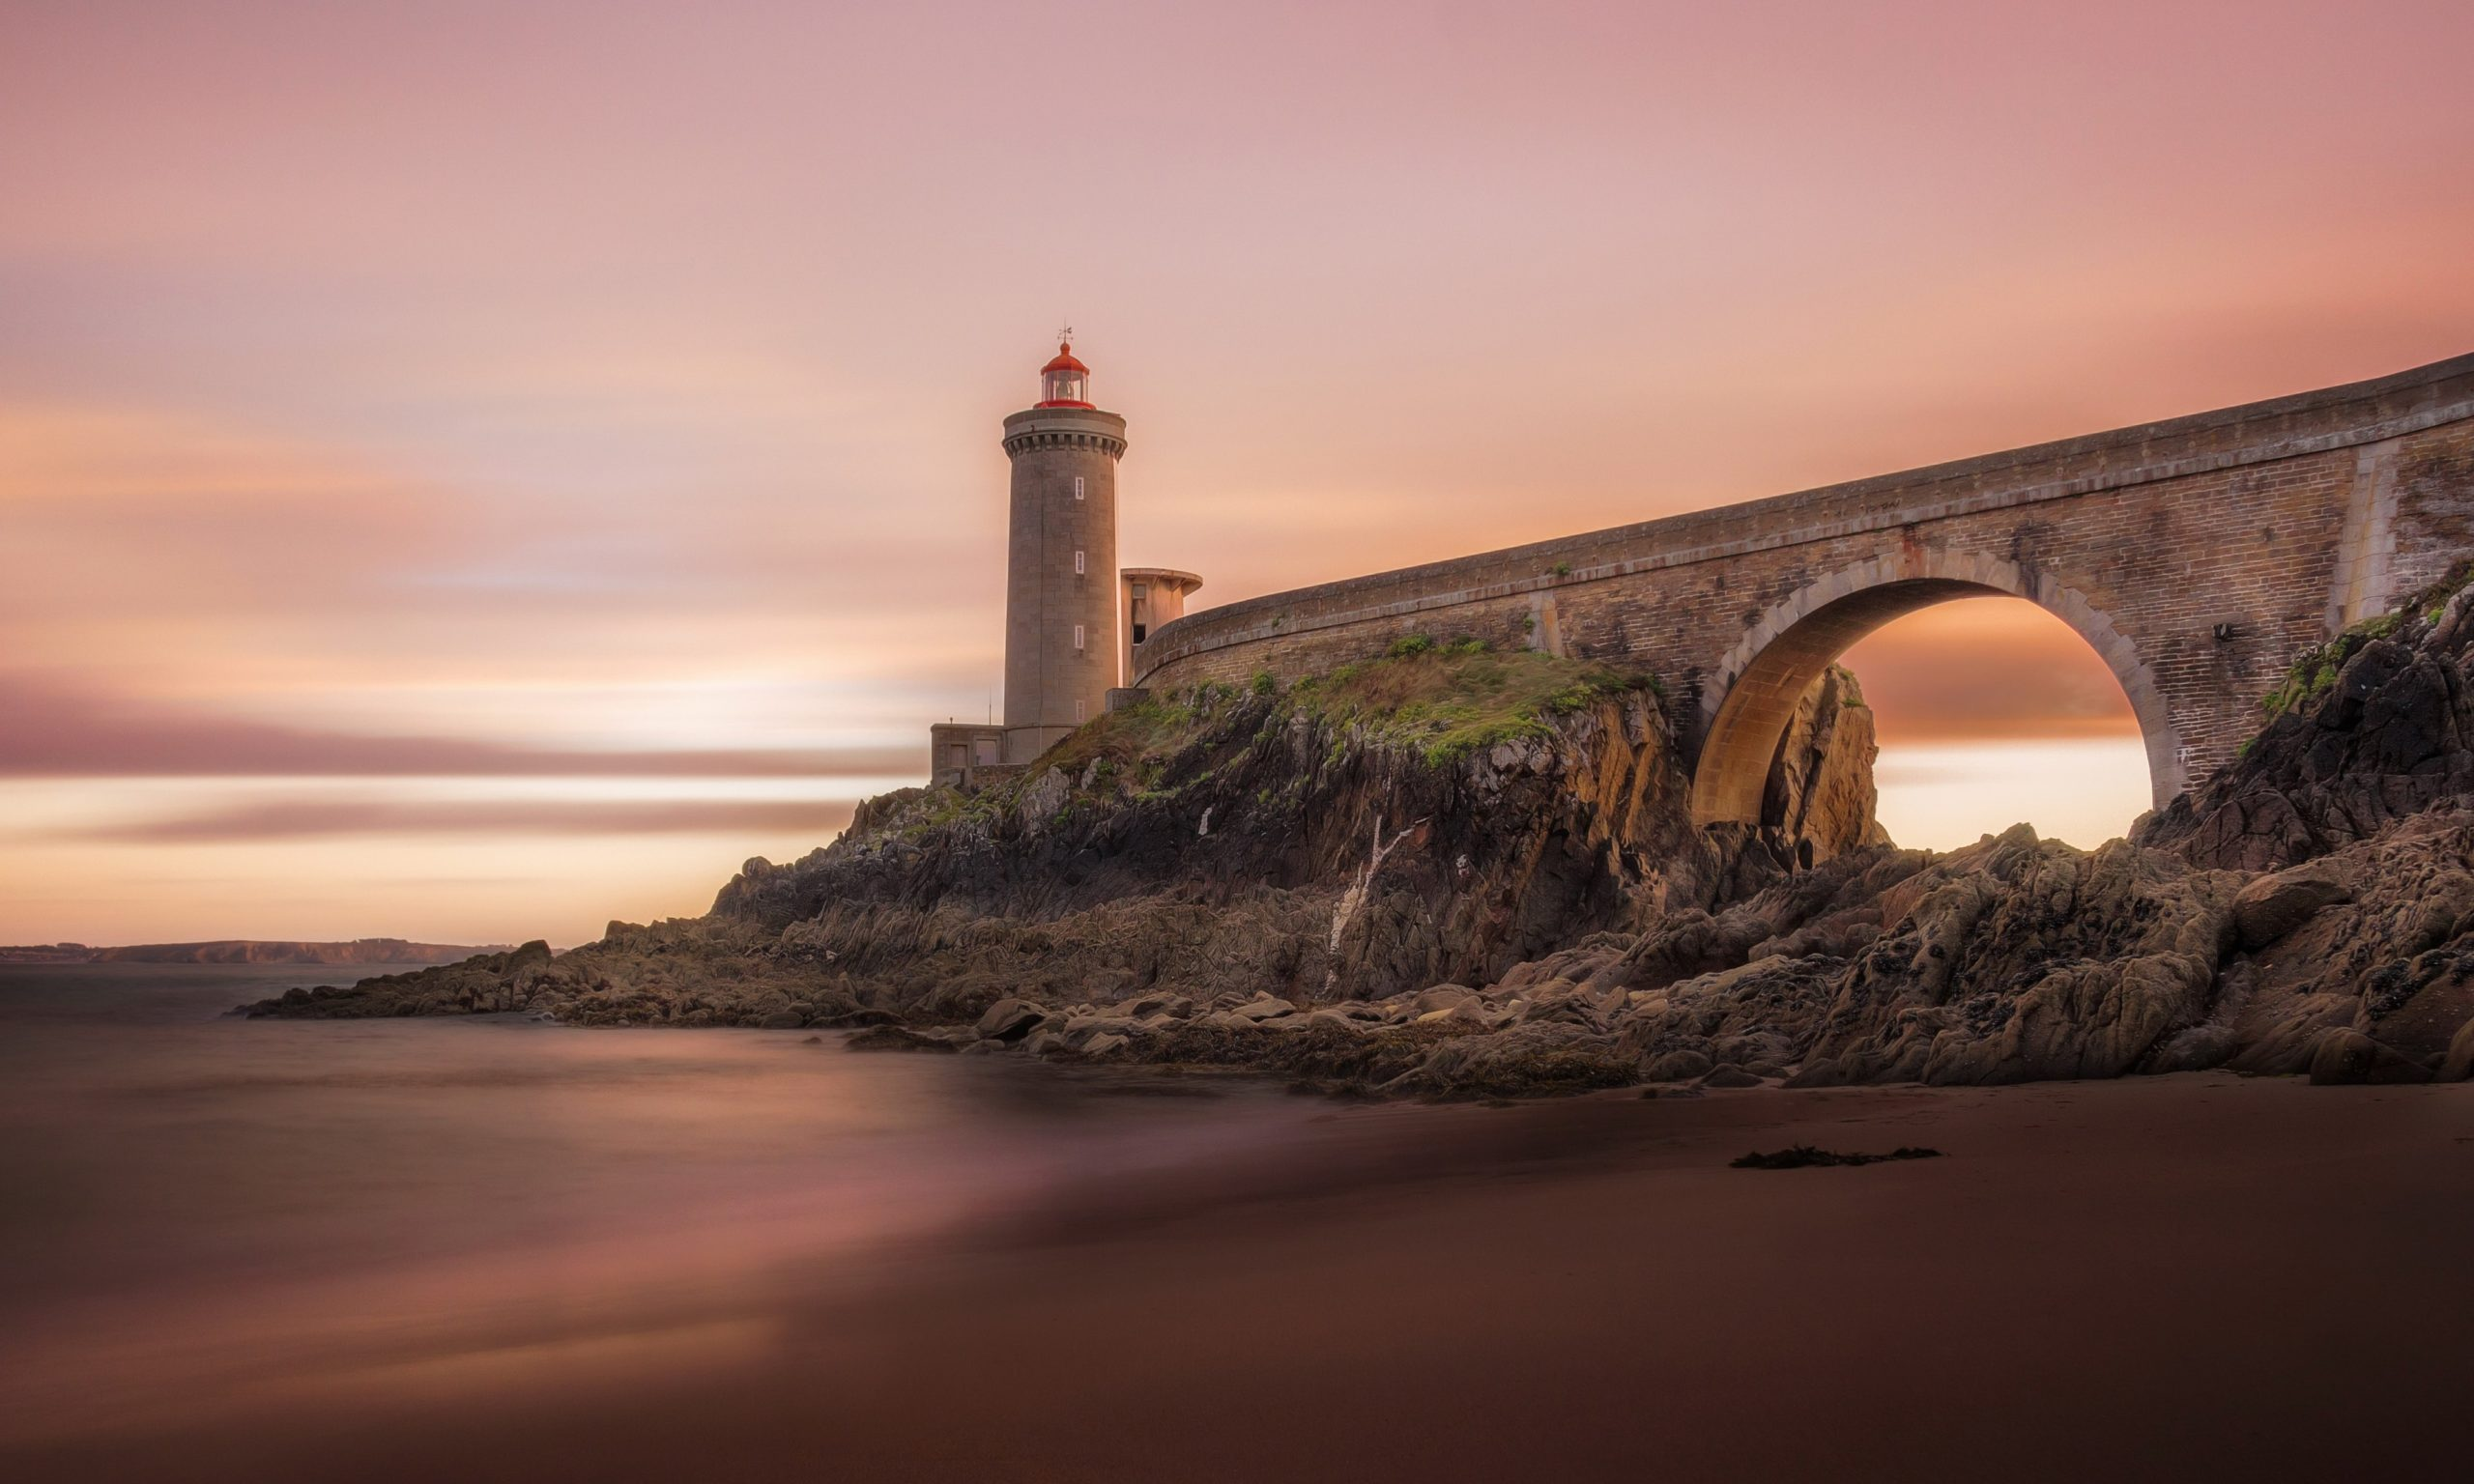 lighthouse background images